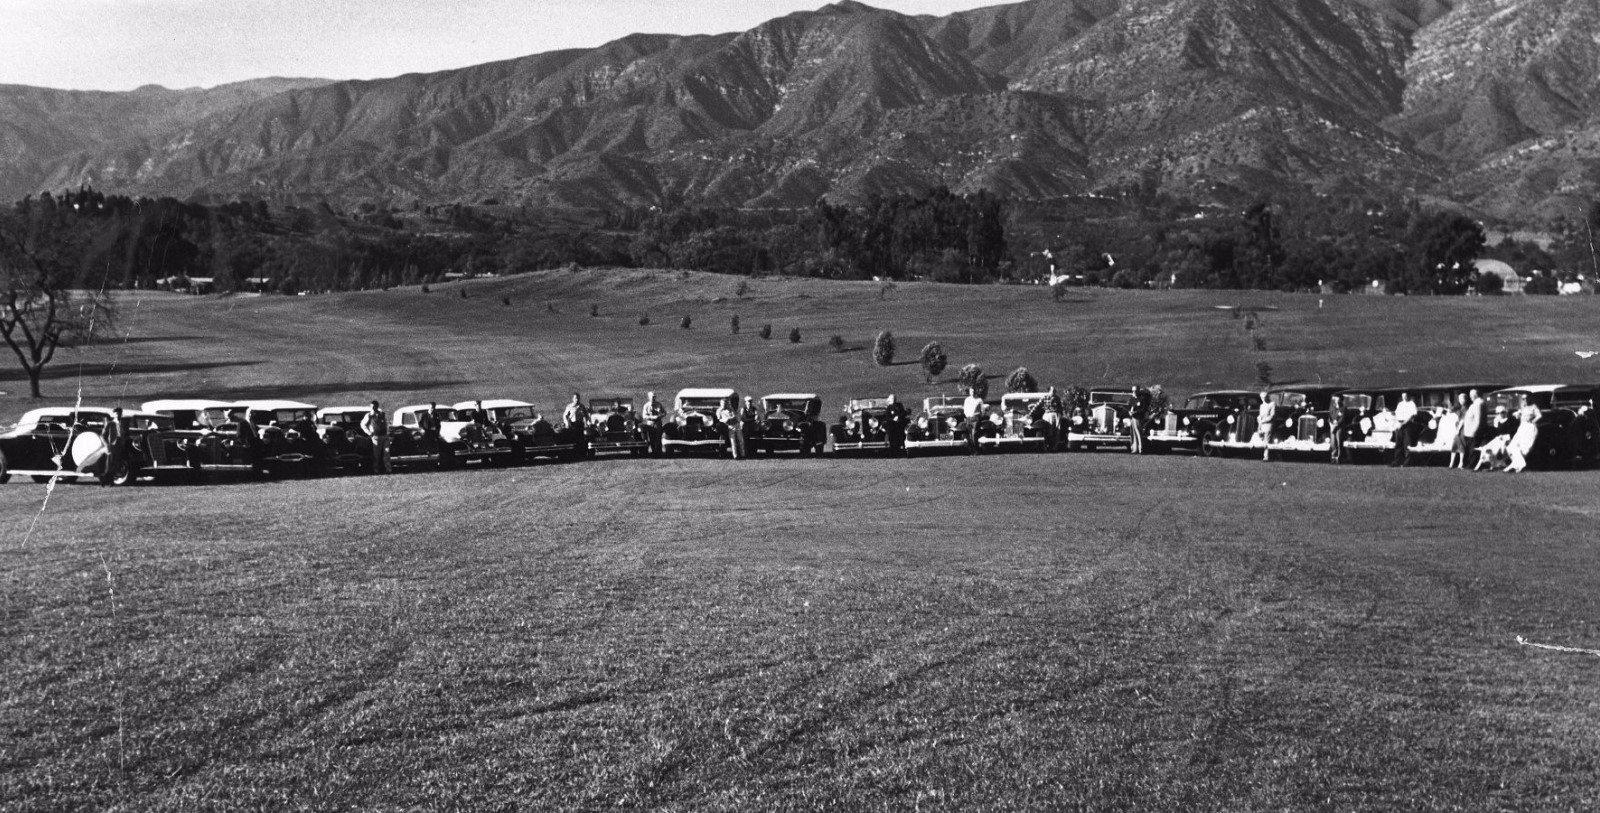 Historic Image of Golf Course at Ojai Valley Inn